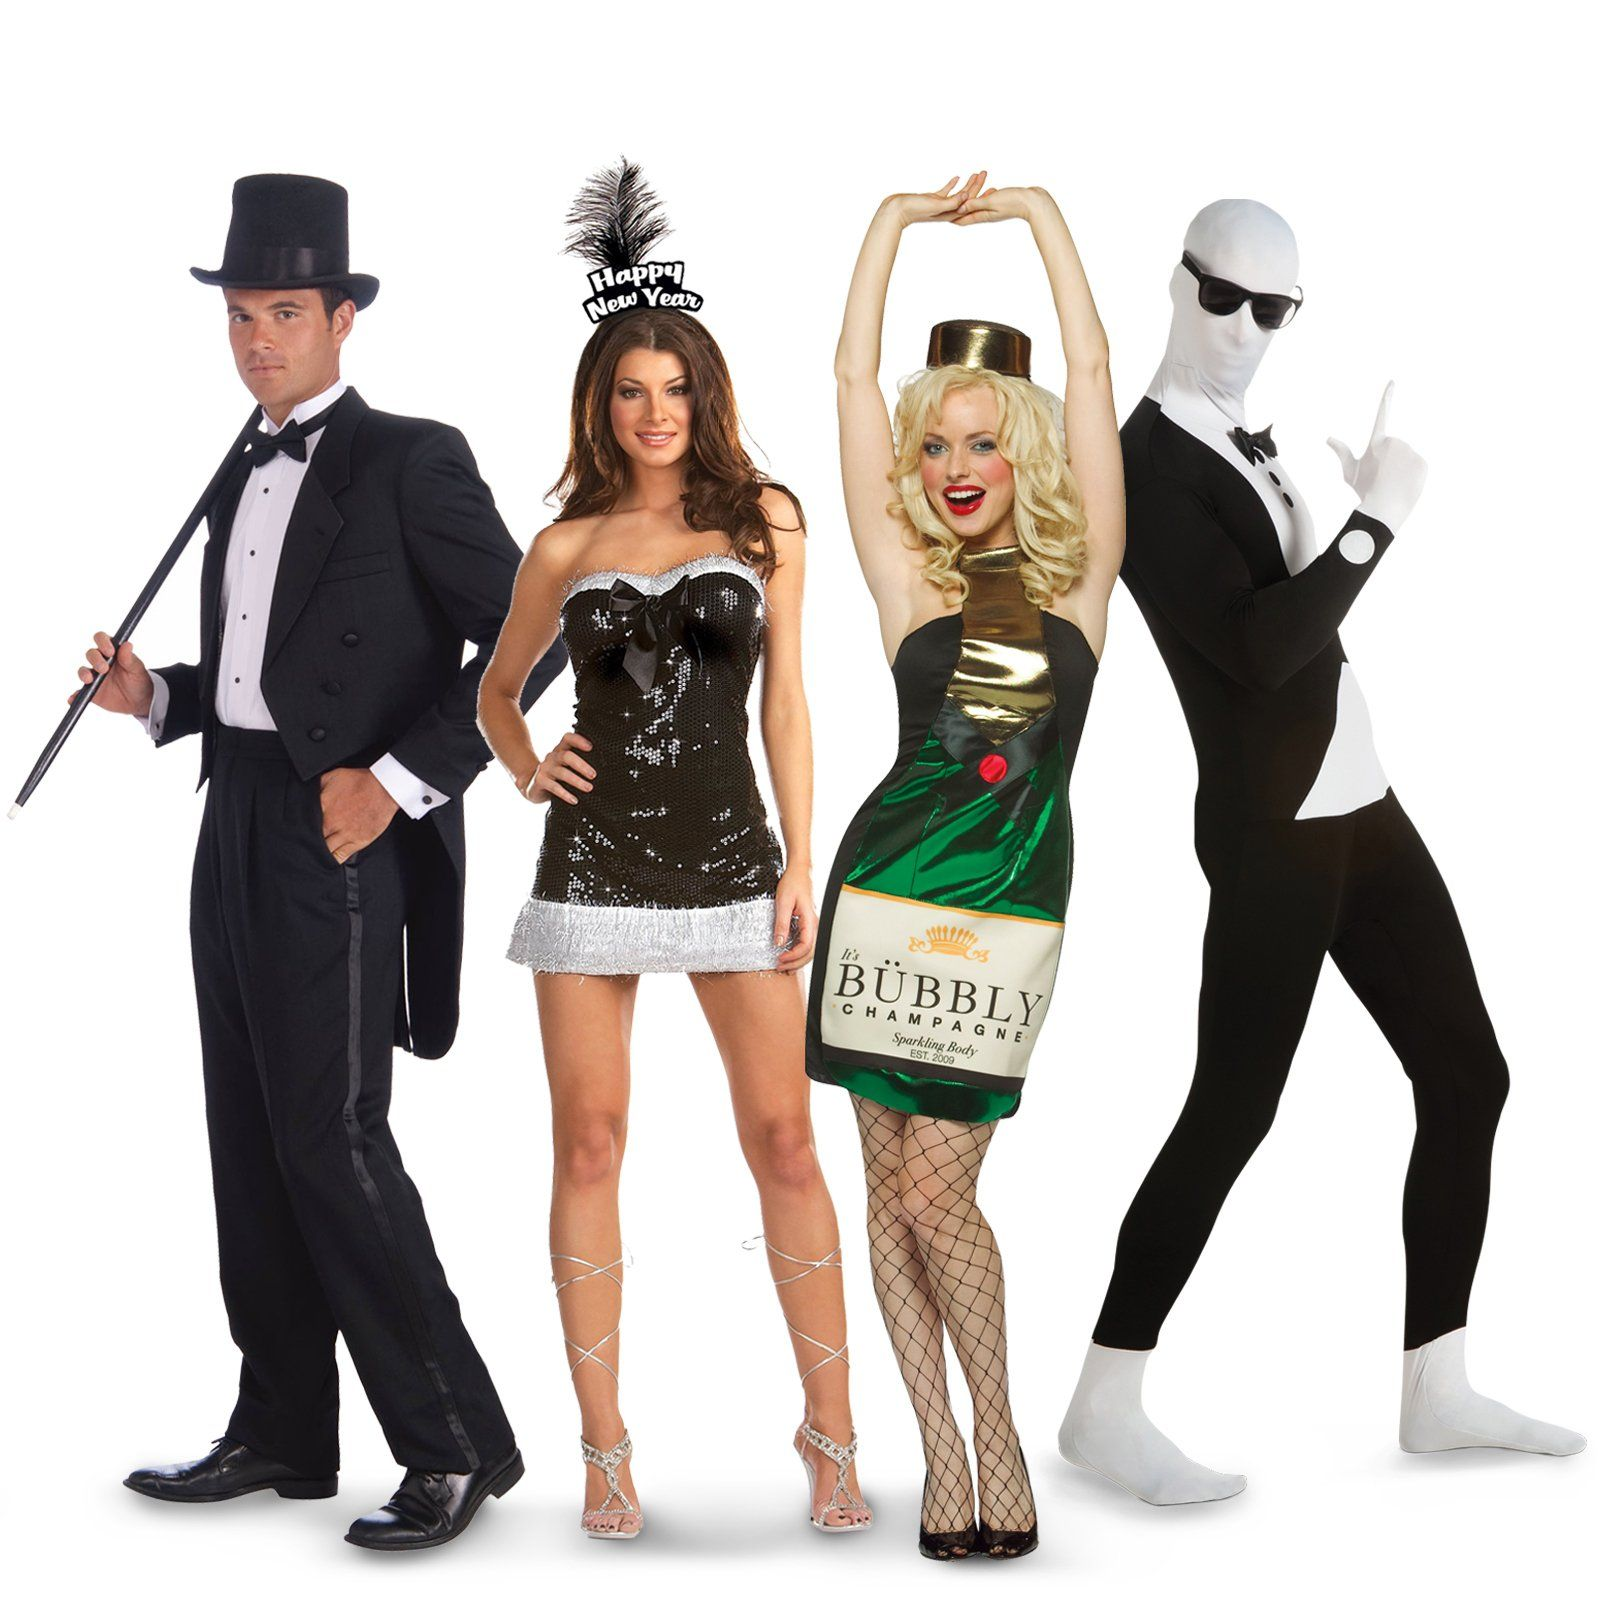 New Years Eve costume idea | Couples costumes, Halloween ...